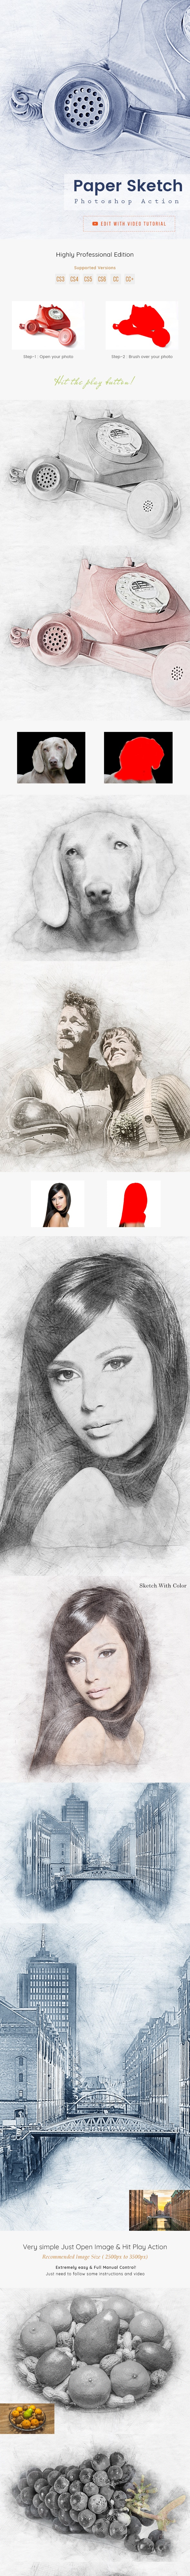 Paper Sketch Photoshop Action - Photo Effects Actions